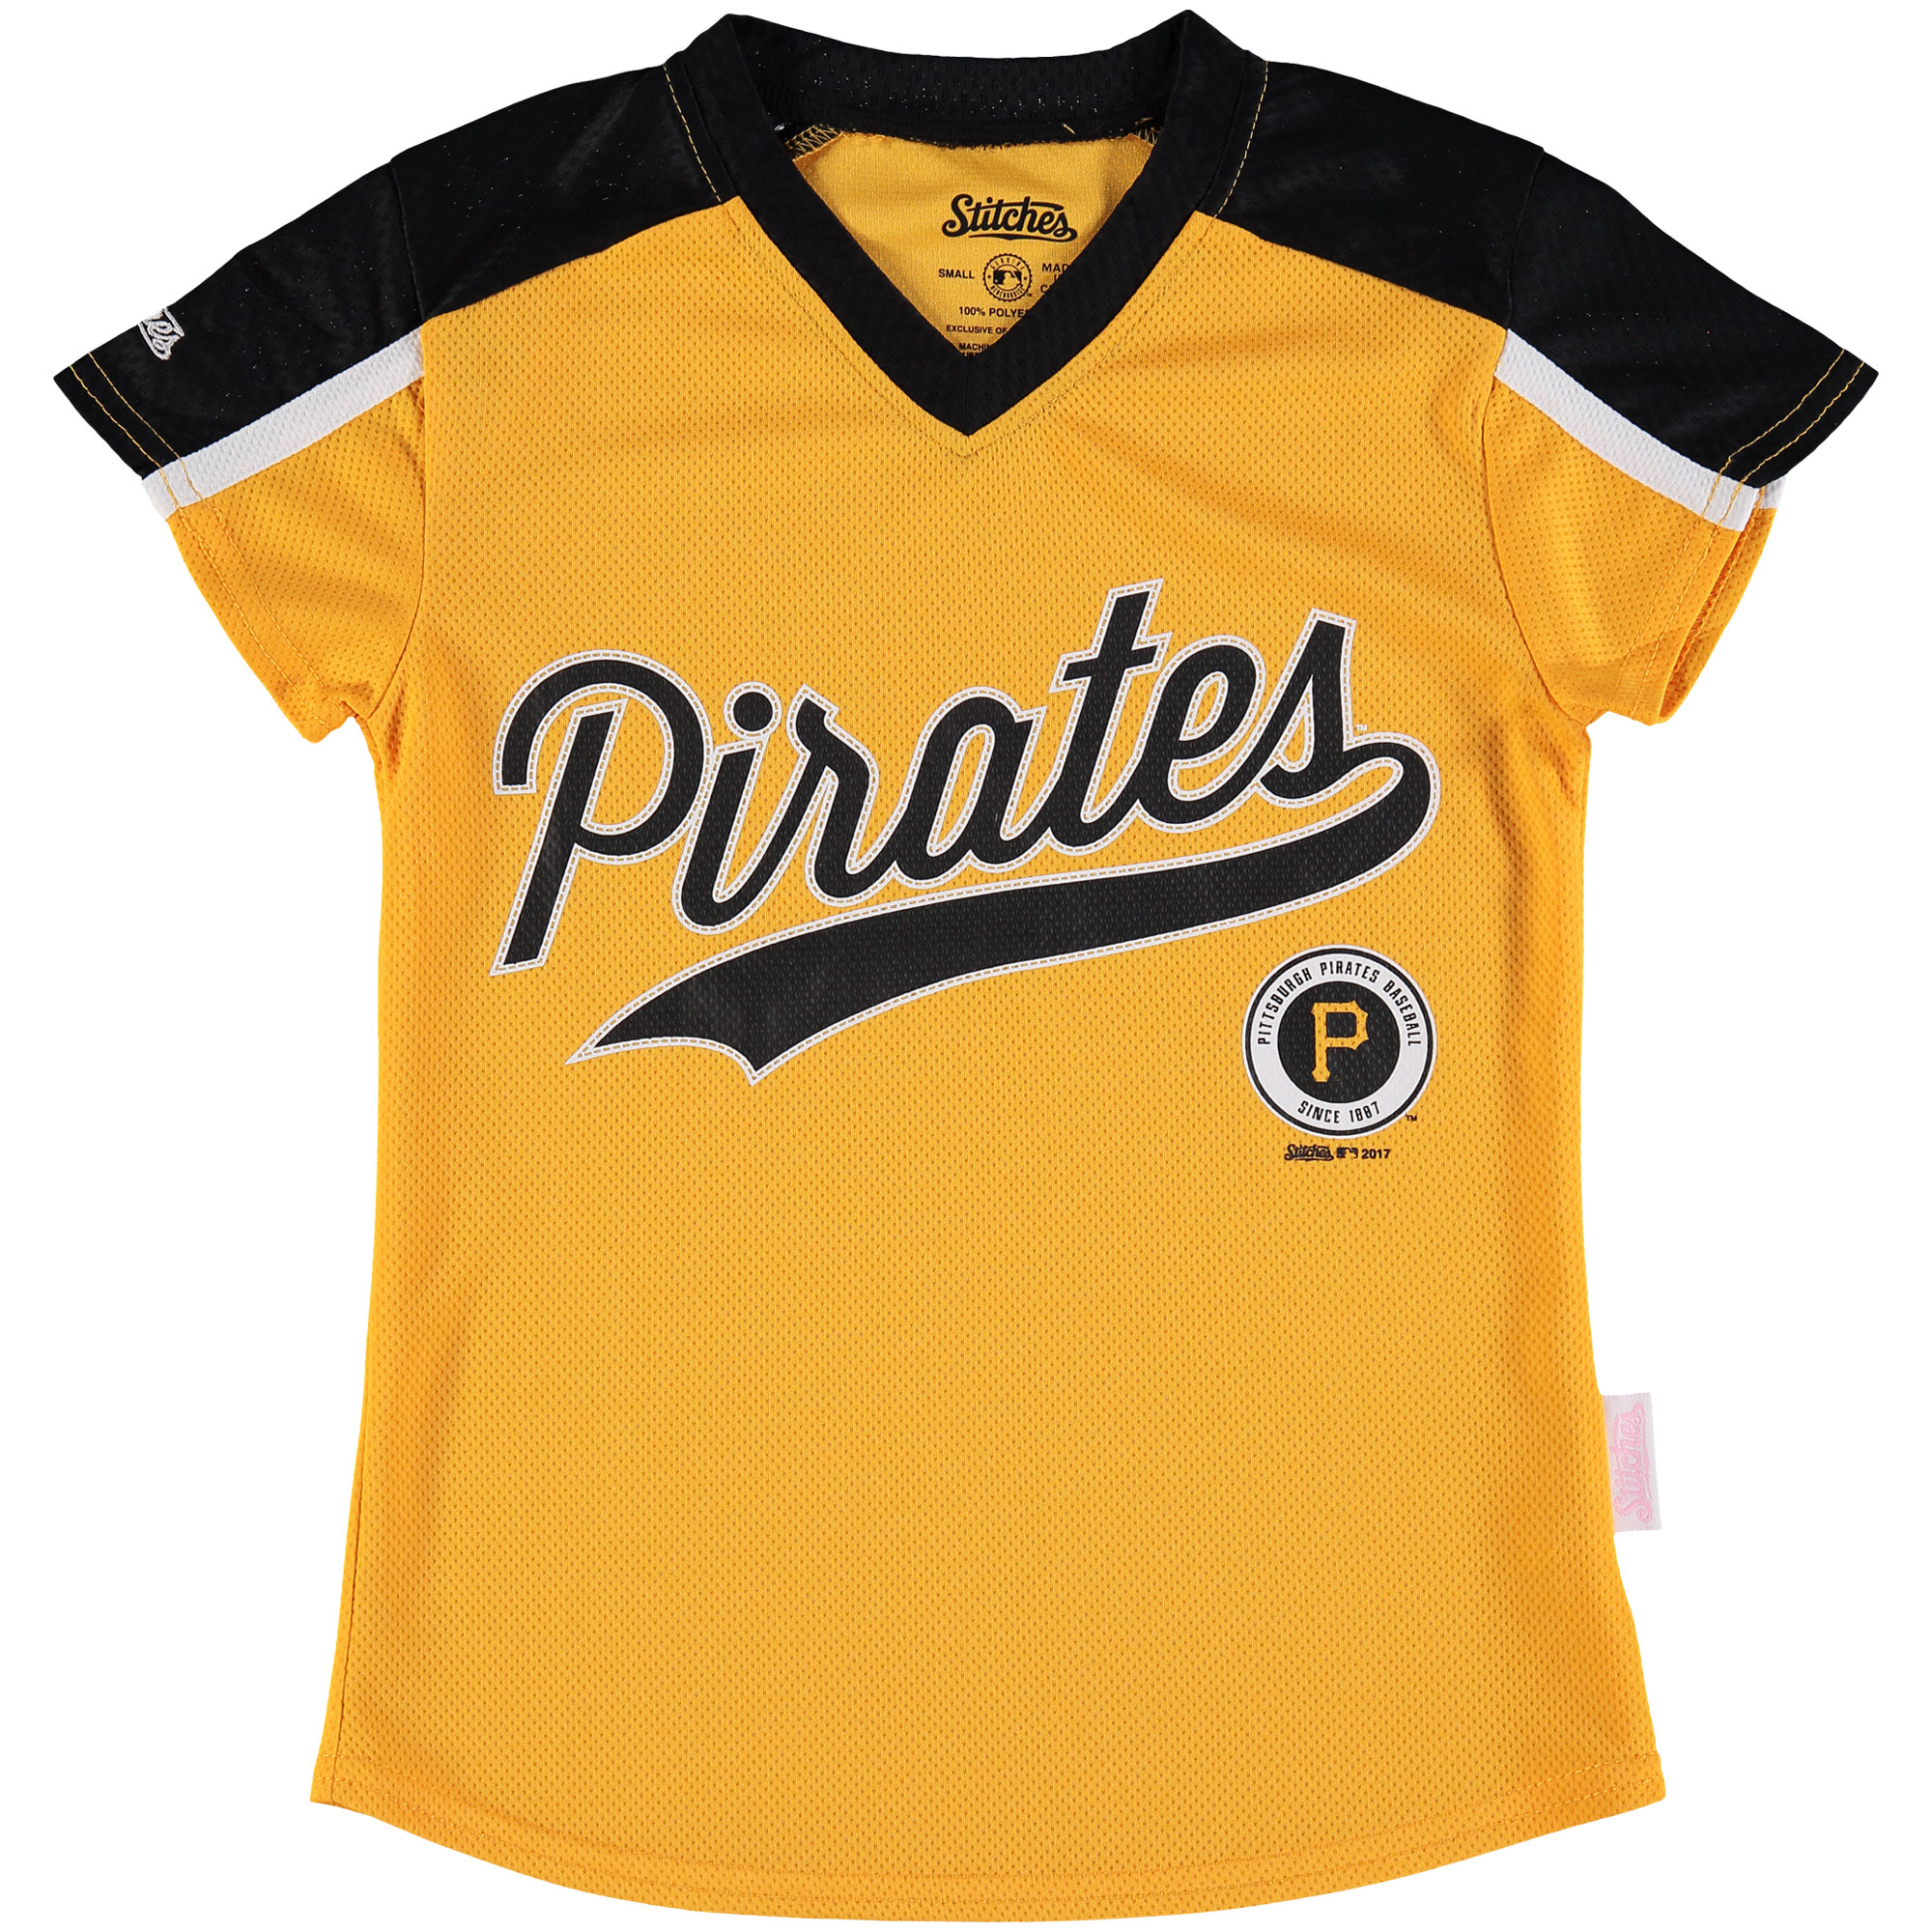 Pittsburgh Pirates Stitches Girls Youth V-Neck Jersey T-Shirt - Gold/Black